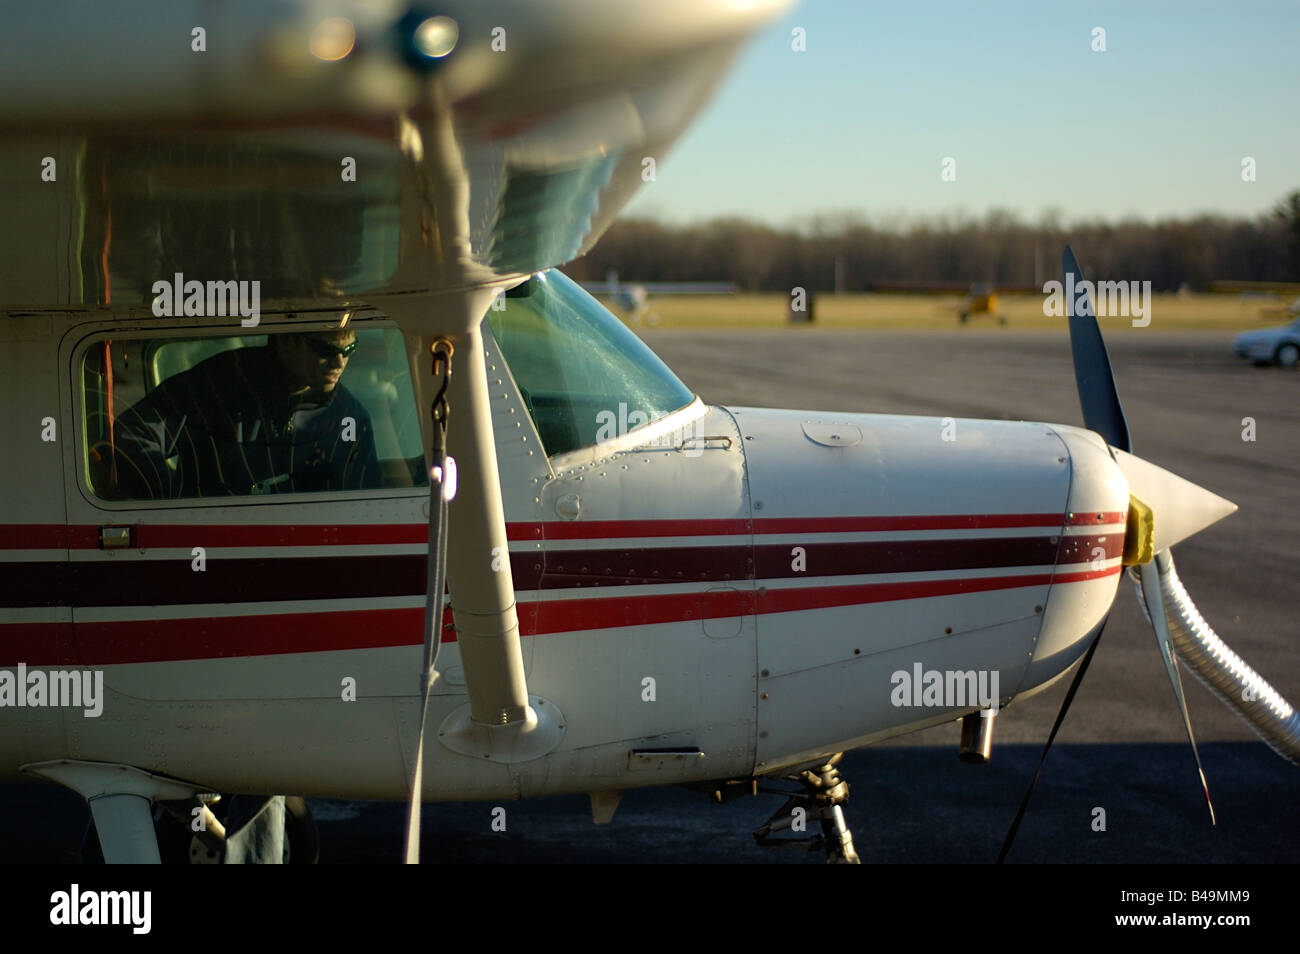 Pilot performs preflight check on a small single engine aircraft while the engine is preheated prior to take off - Stock Image